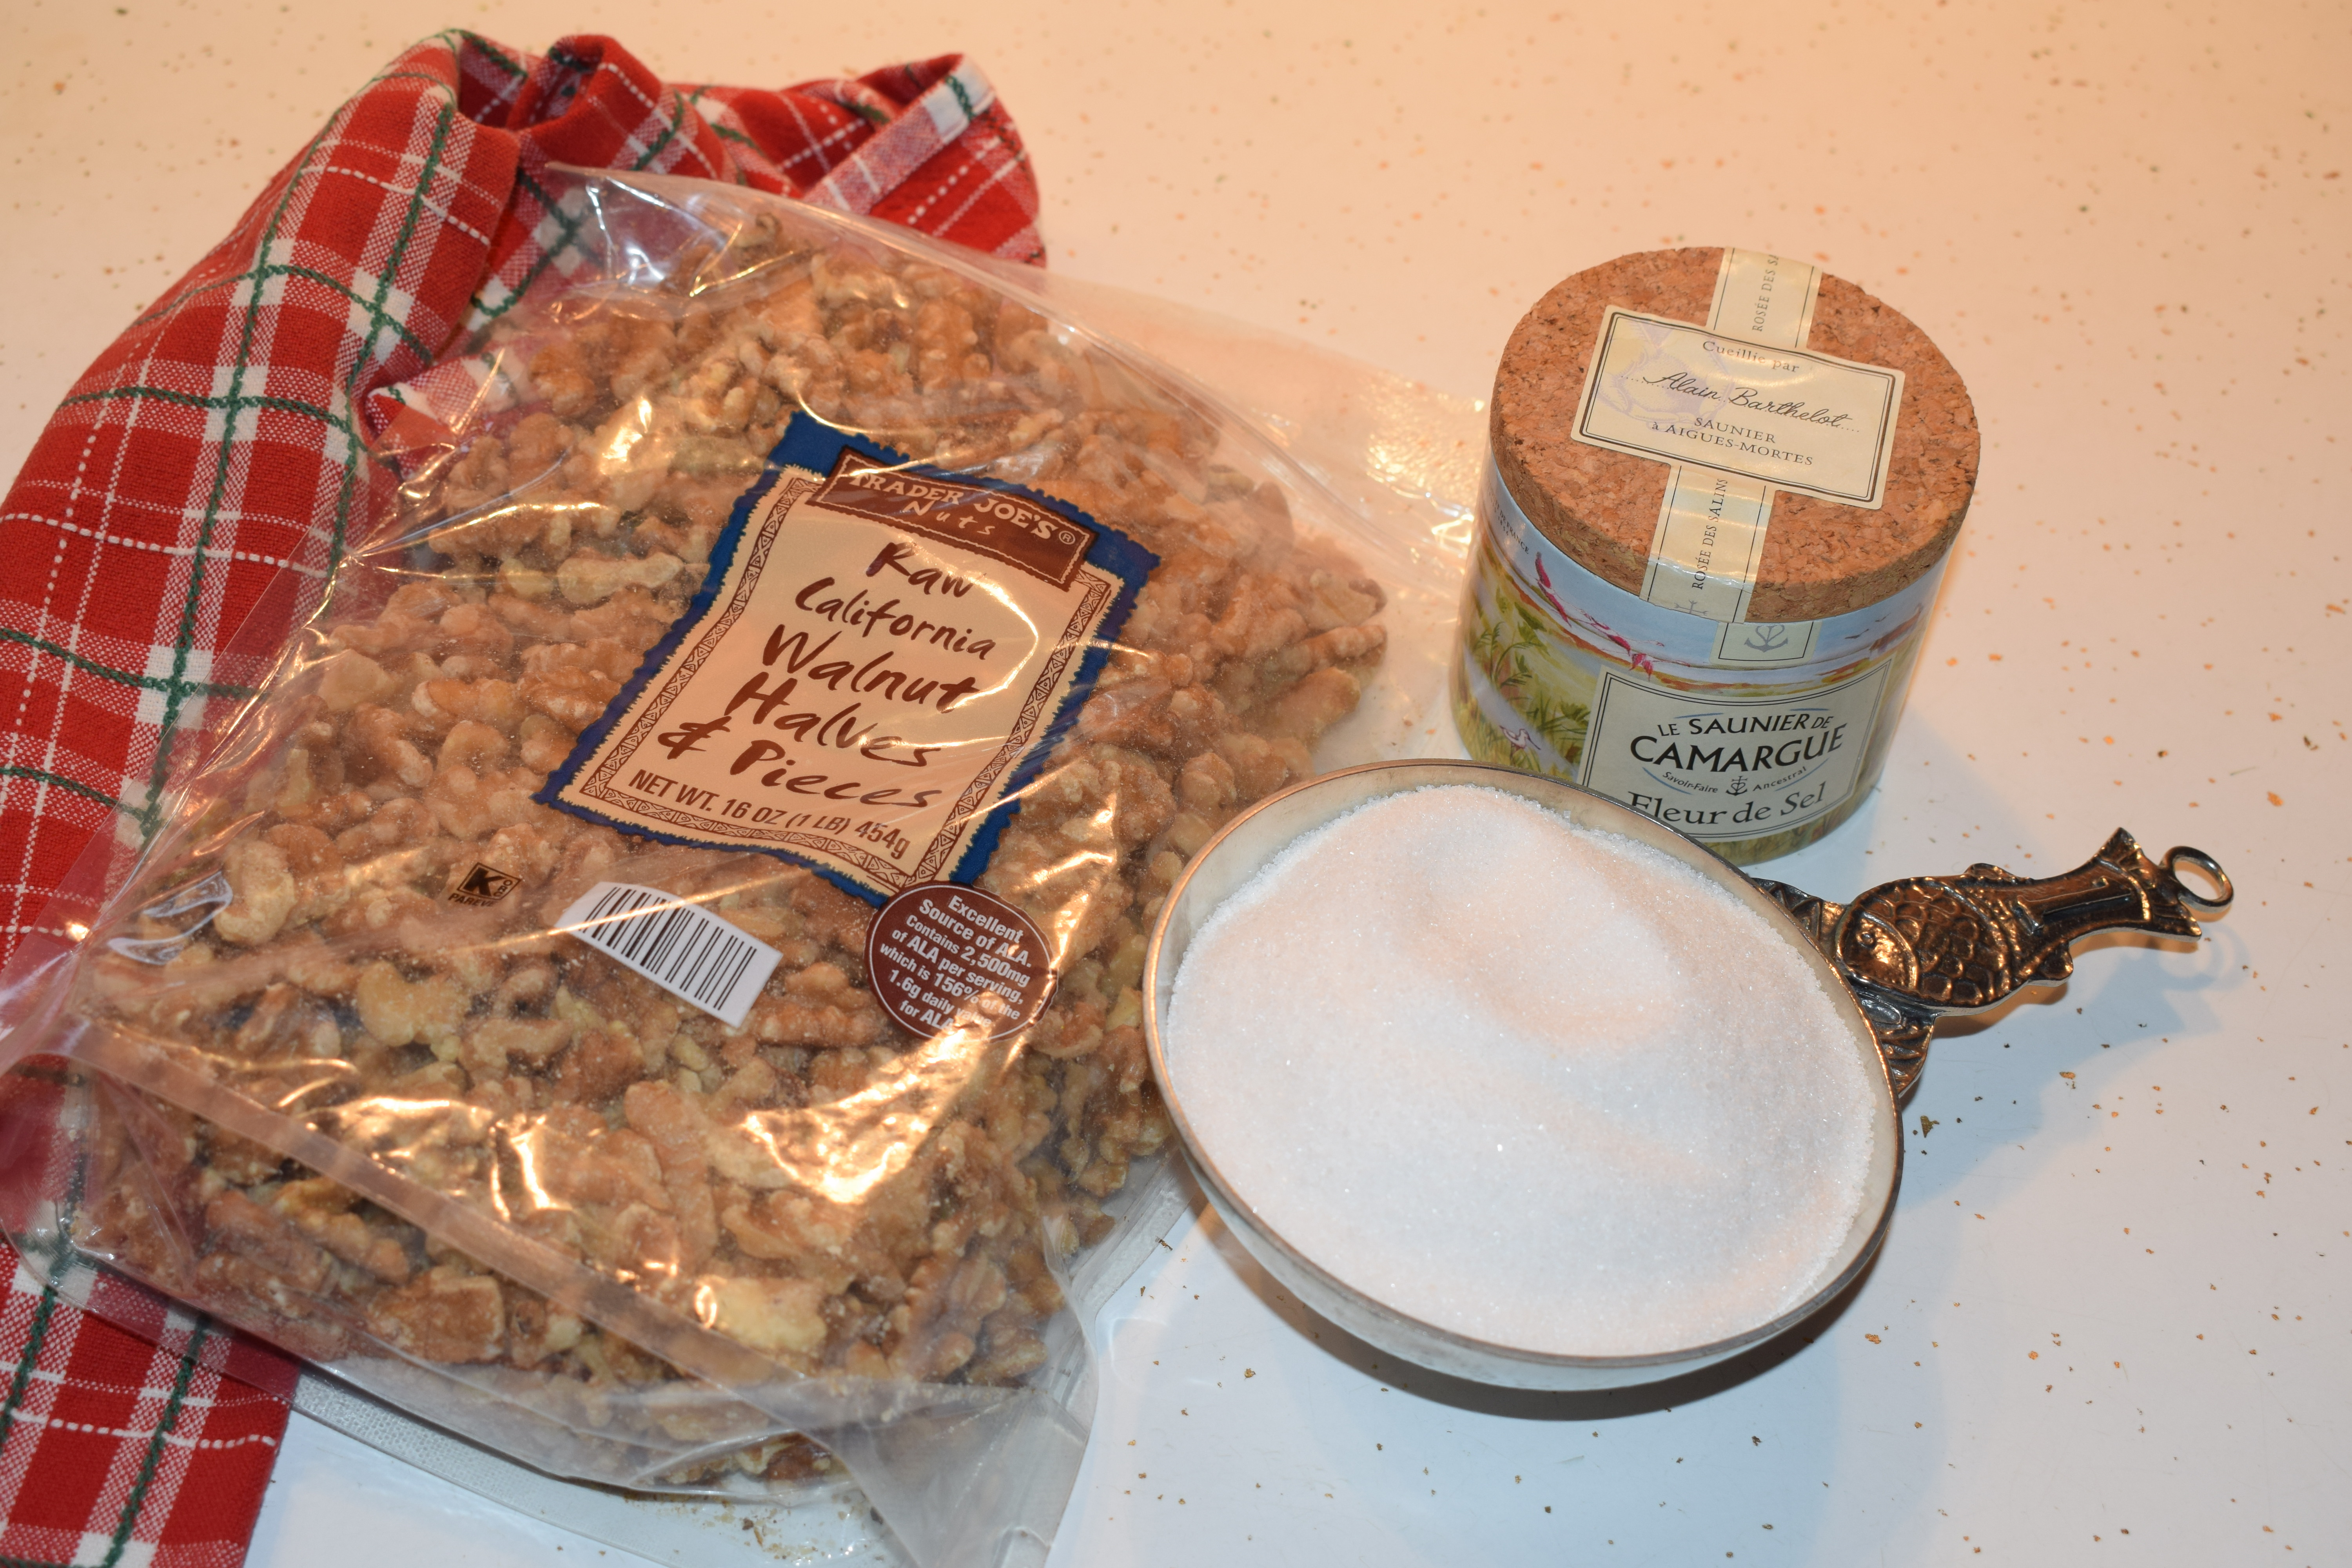 Ingredients for Sweet and Salty Walnuts Recipe